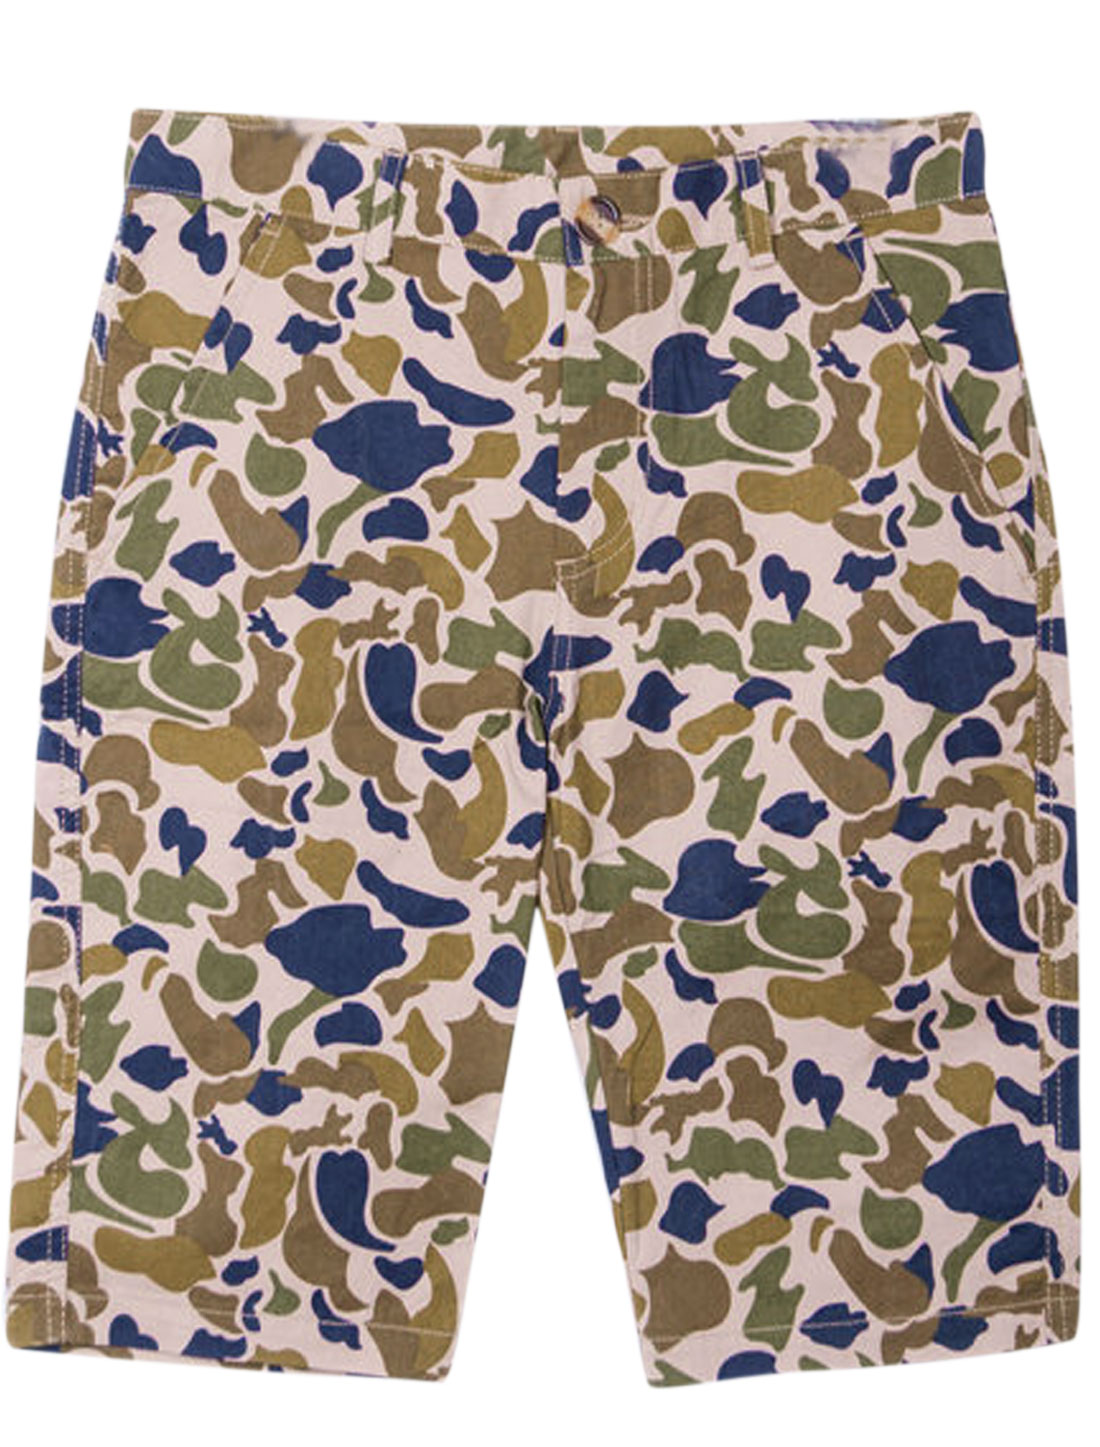 Men Button-Up Camouflage Pattern Chic NEW Shorts Navy Blue Khaki W28